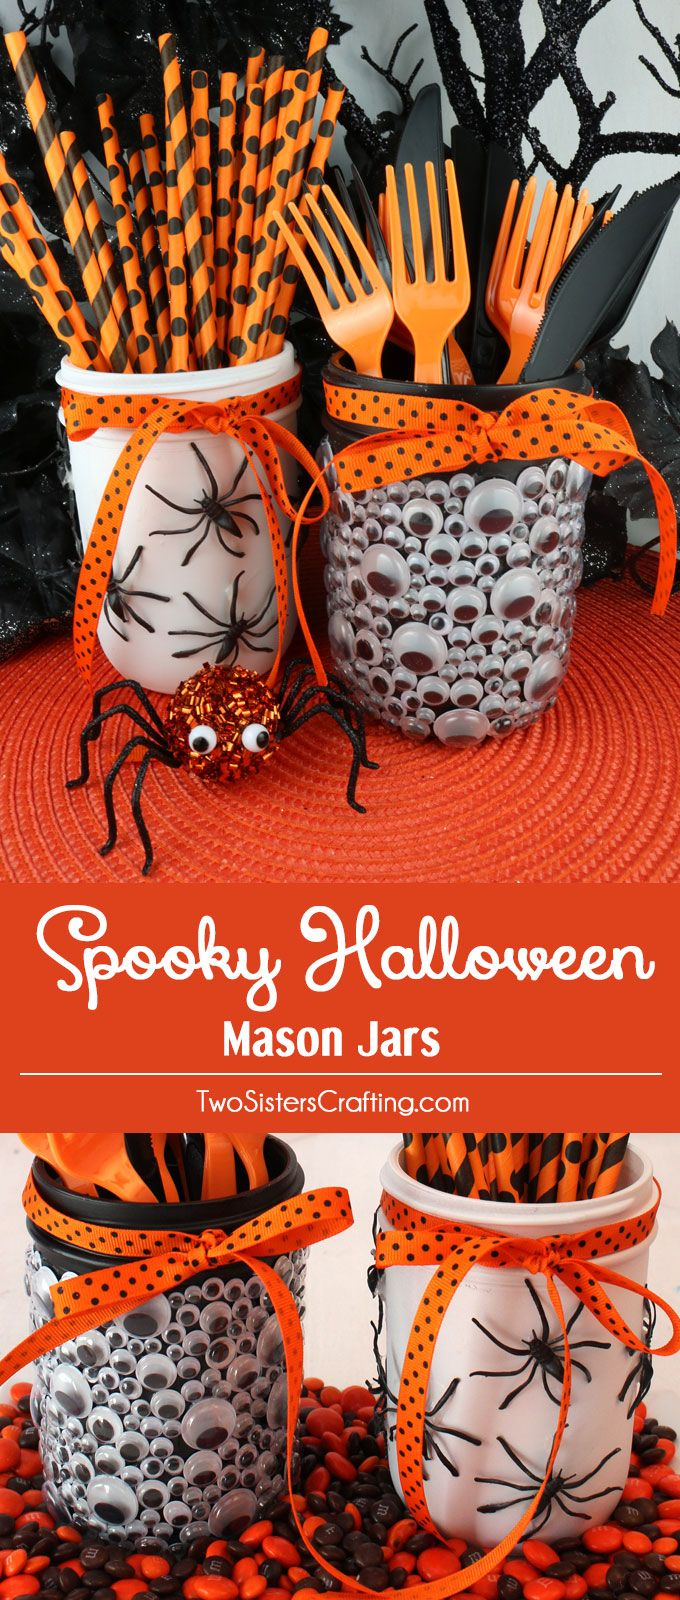 Diy halloween decorations - Spooky Halloween Mason Jars